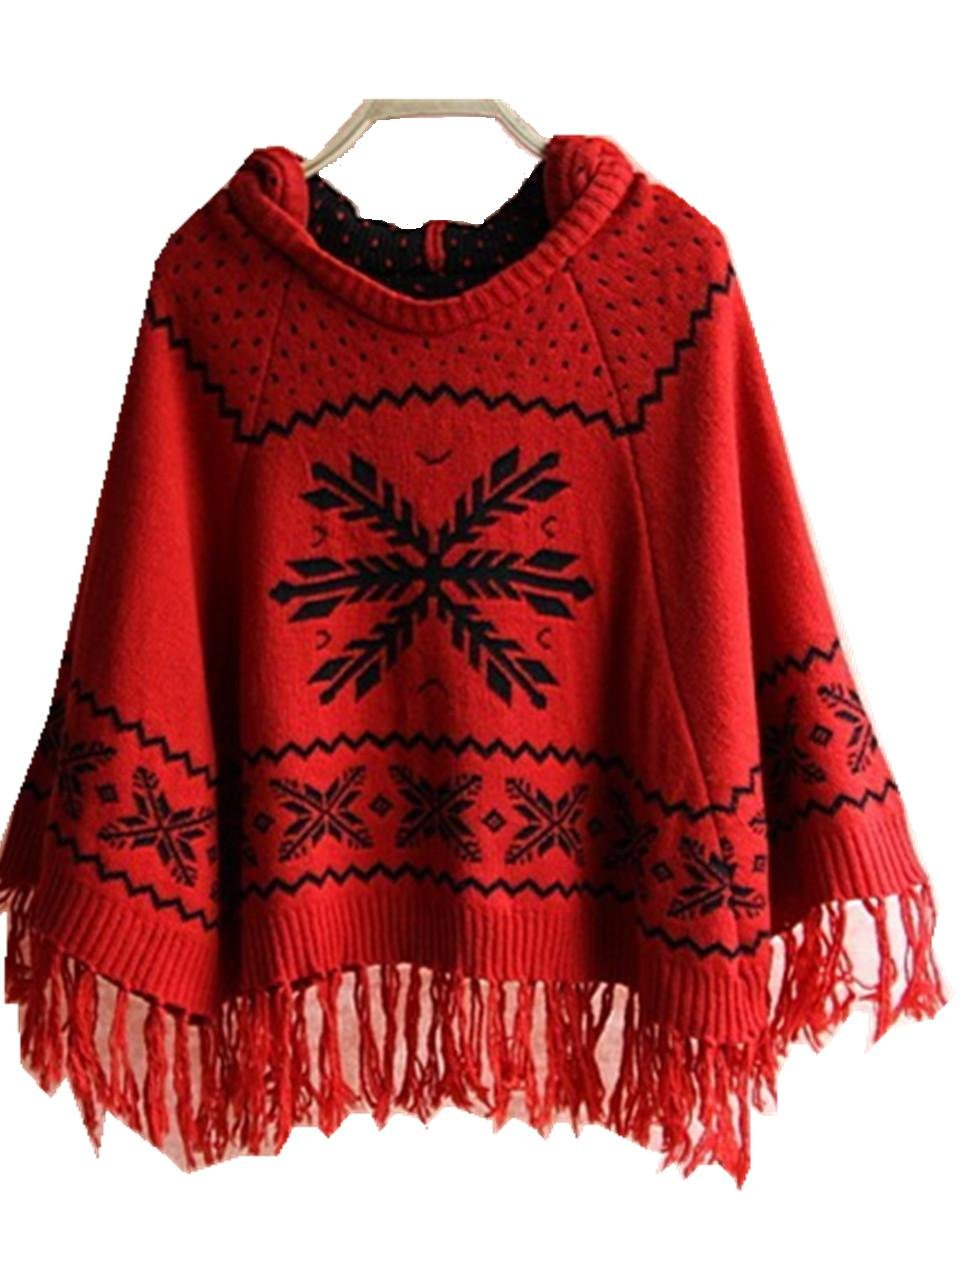 NEW Bohemia Tassel Poncho with Hoodie Knitted Shawl Batwing Sleeve Autumn and Winter Sweater Outerwear (Black) Junestar